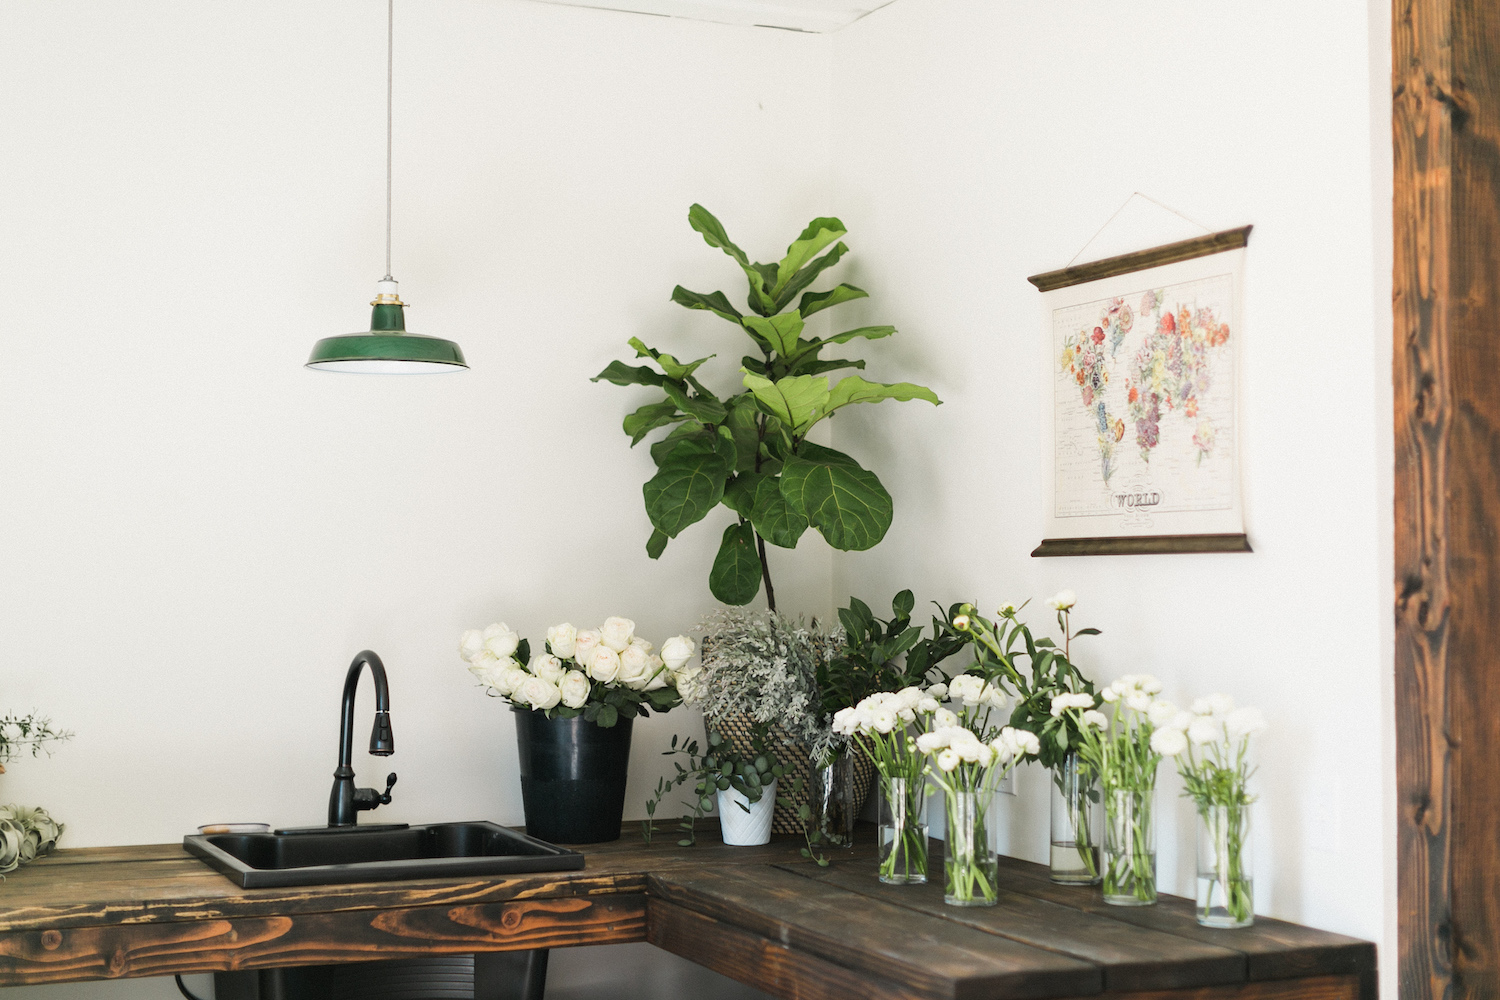 Compass Floral Studio photographed by Jackie Wonders.